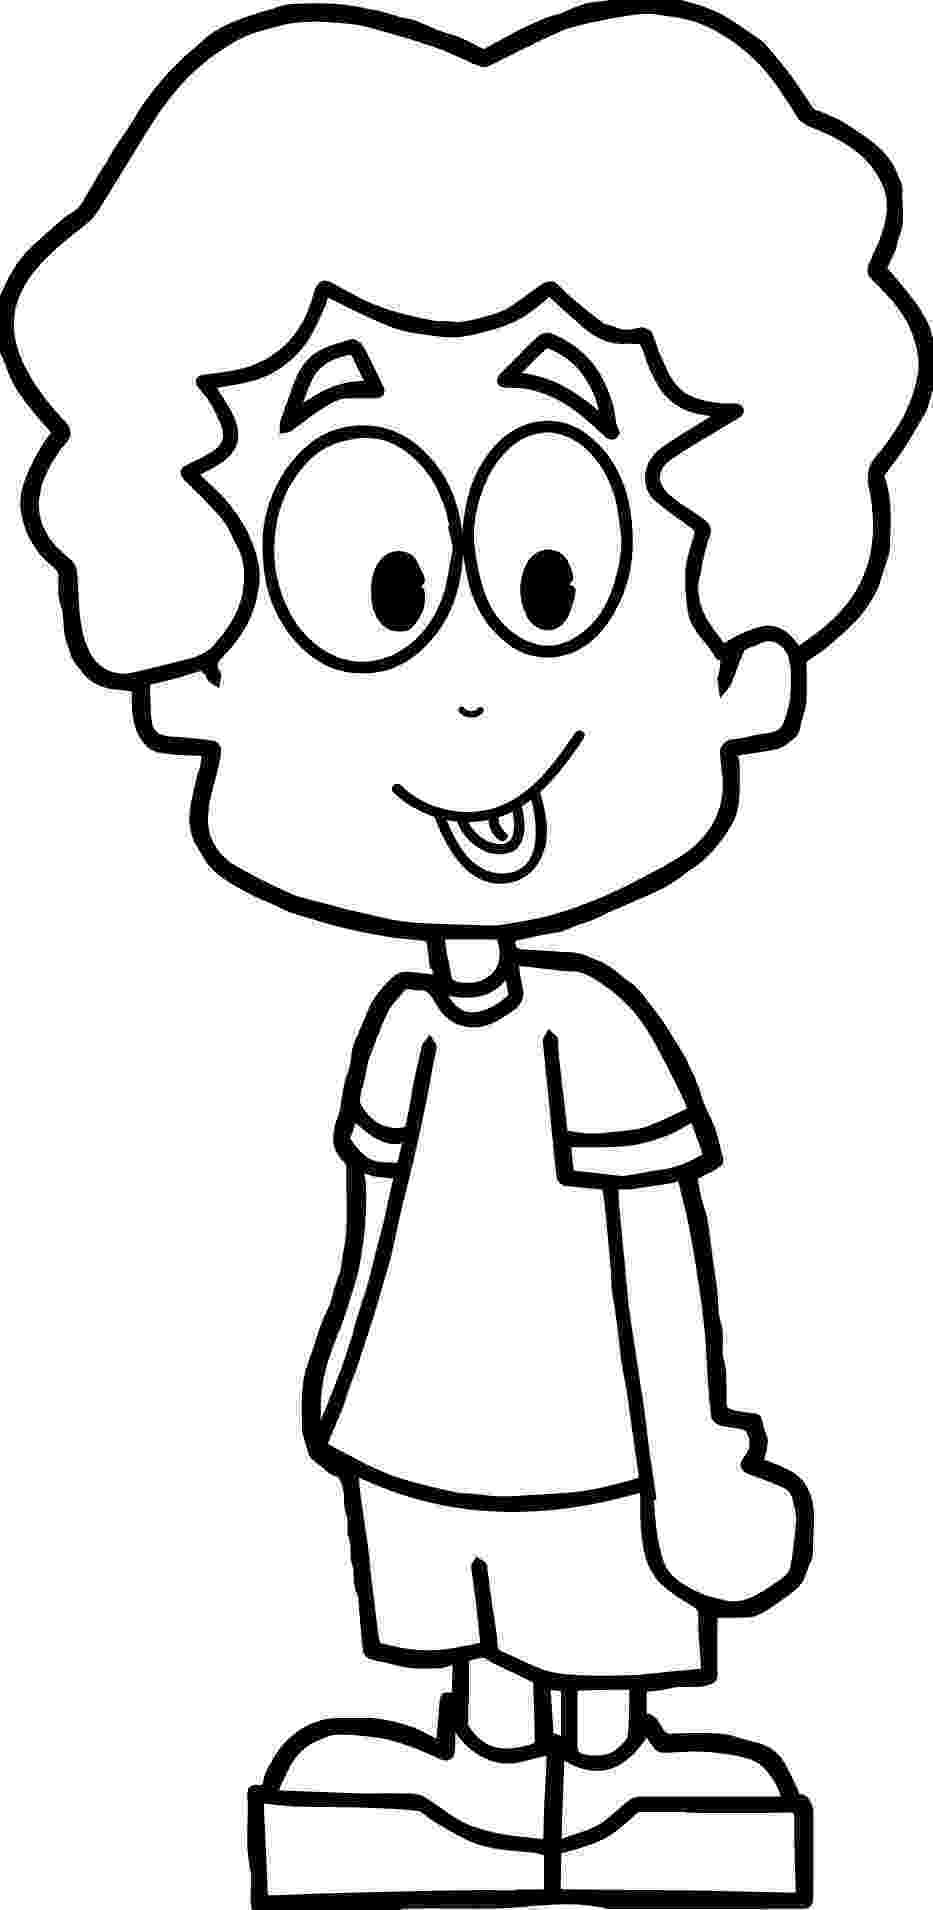 picture of a boy to color cute little boy holding seedling coloring page free to a of picture boy color